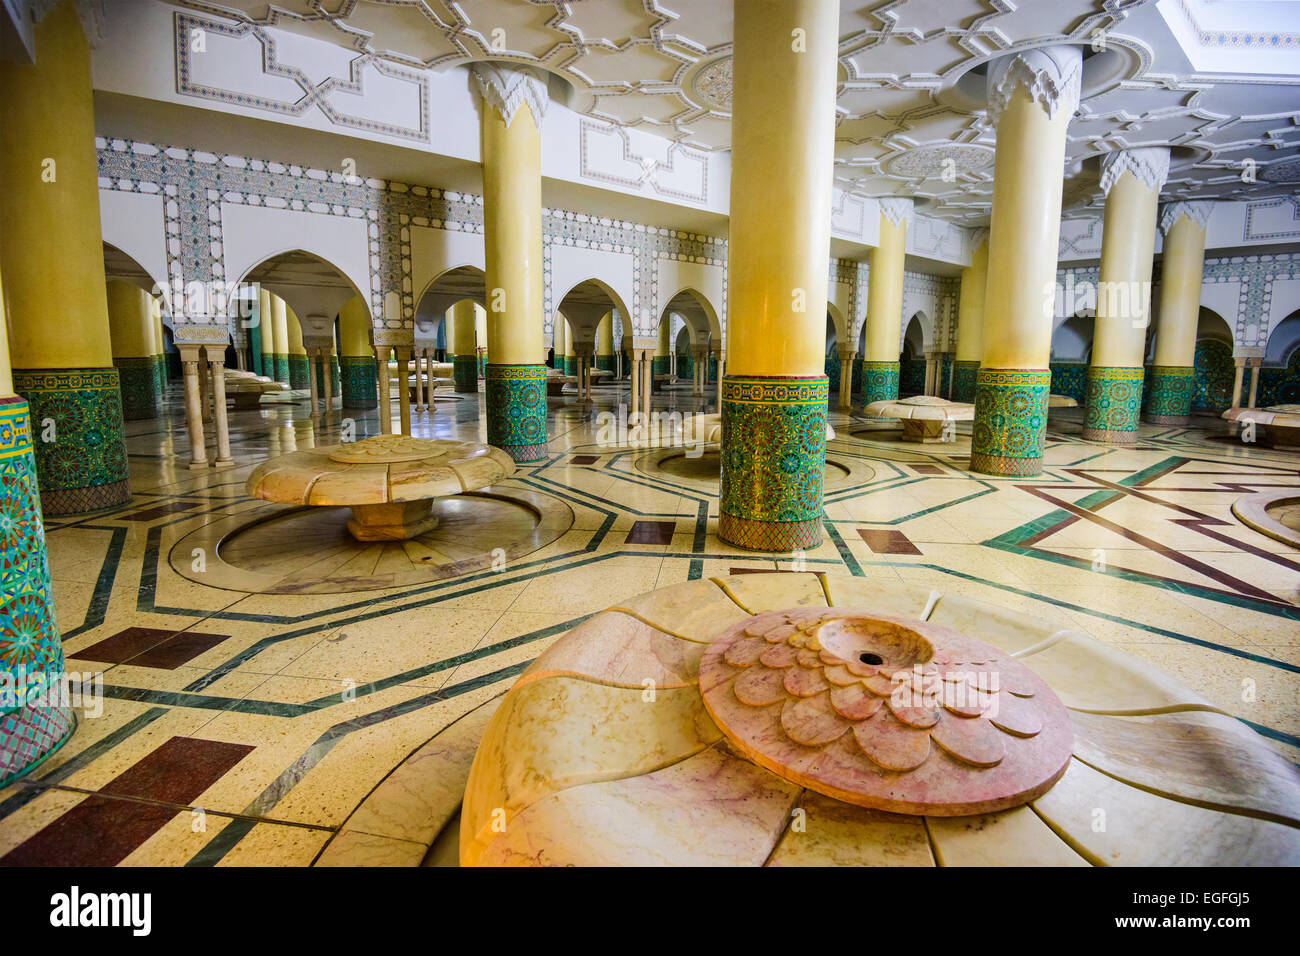 The Wudu wash room of Hassan II Grand Mosque. The ritual of washing is performed before formal prayer. - Stock Image